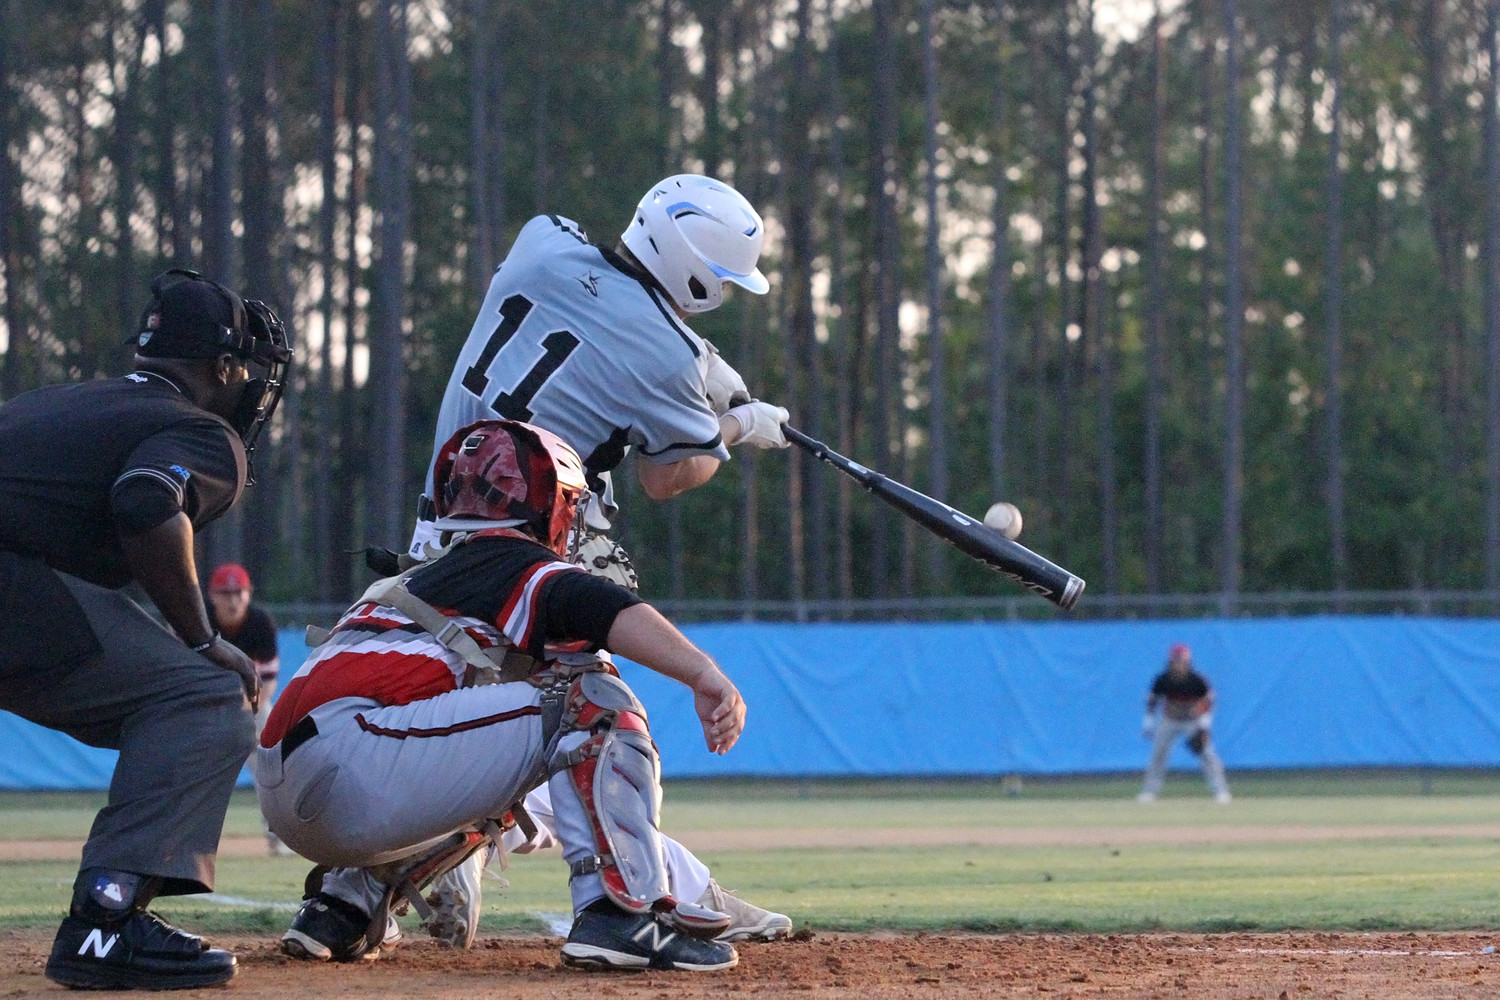 Jacob Young of the Sharks drives the ball to deep left field.